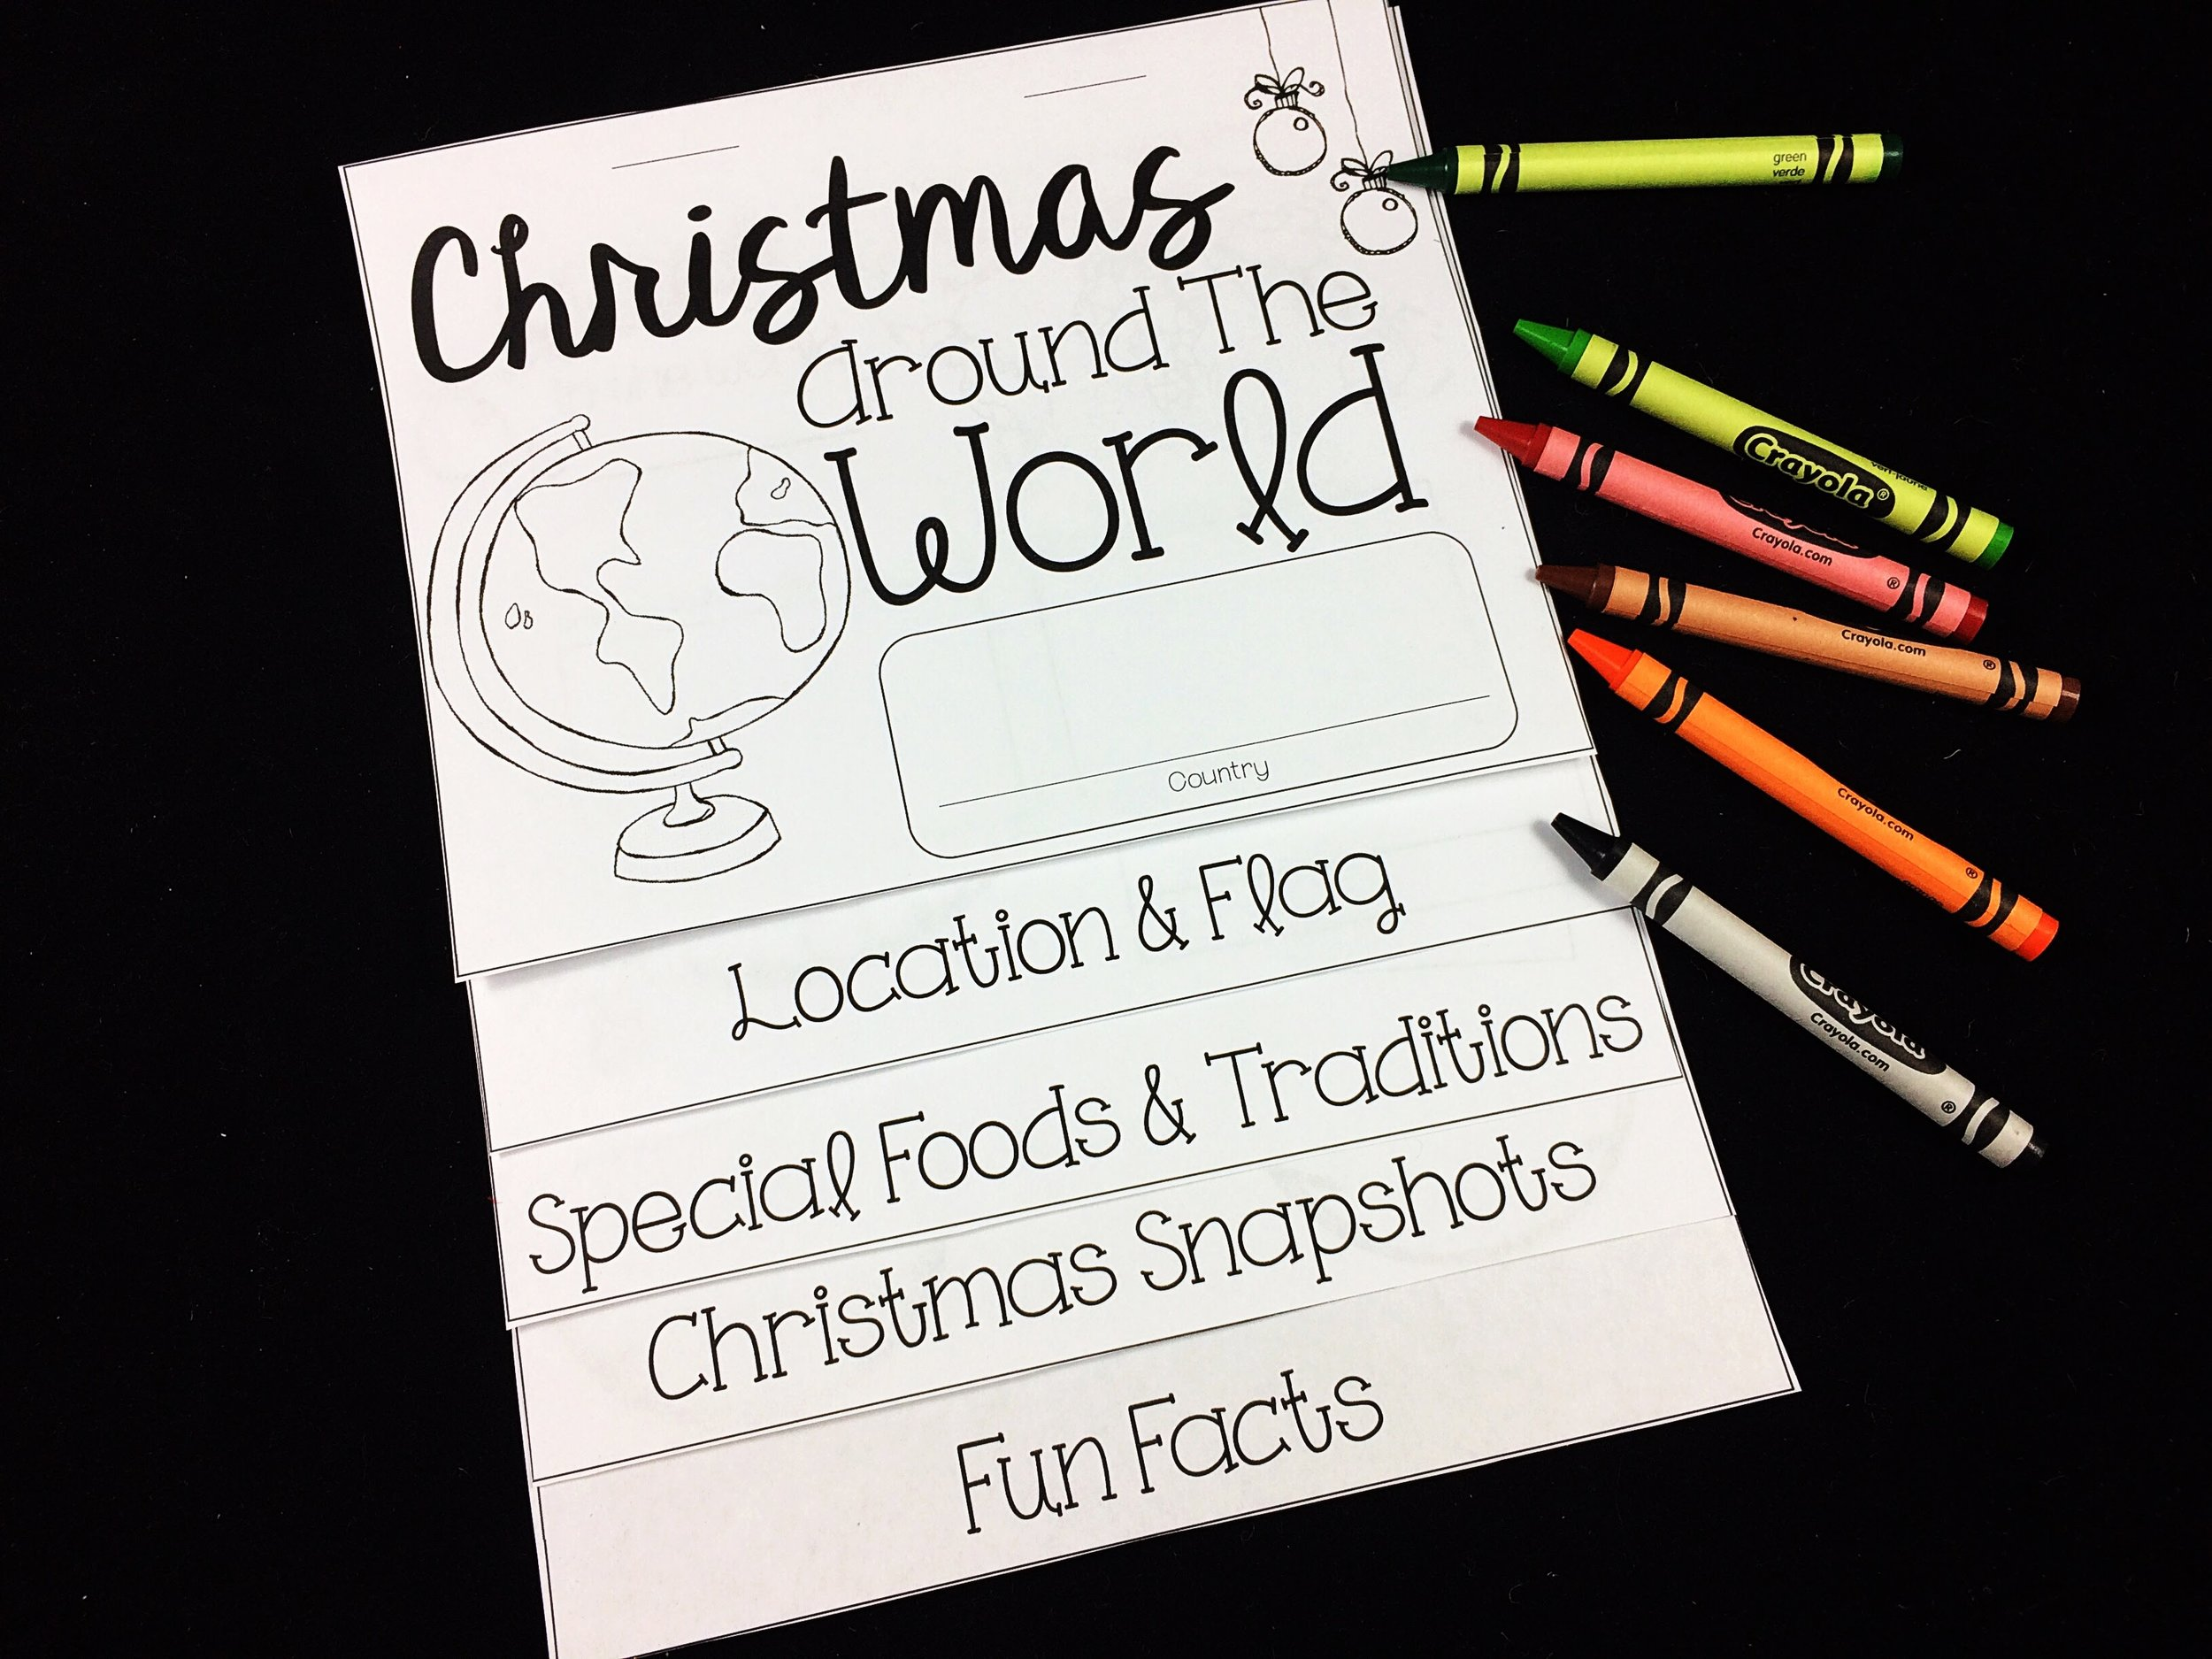 I had my students pick a country from a selected list that I created and research ways that they celebrate Christmas. Students would research online and use books in our classroom and school libraries.